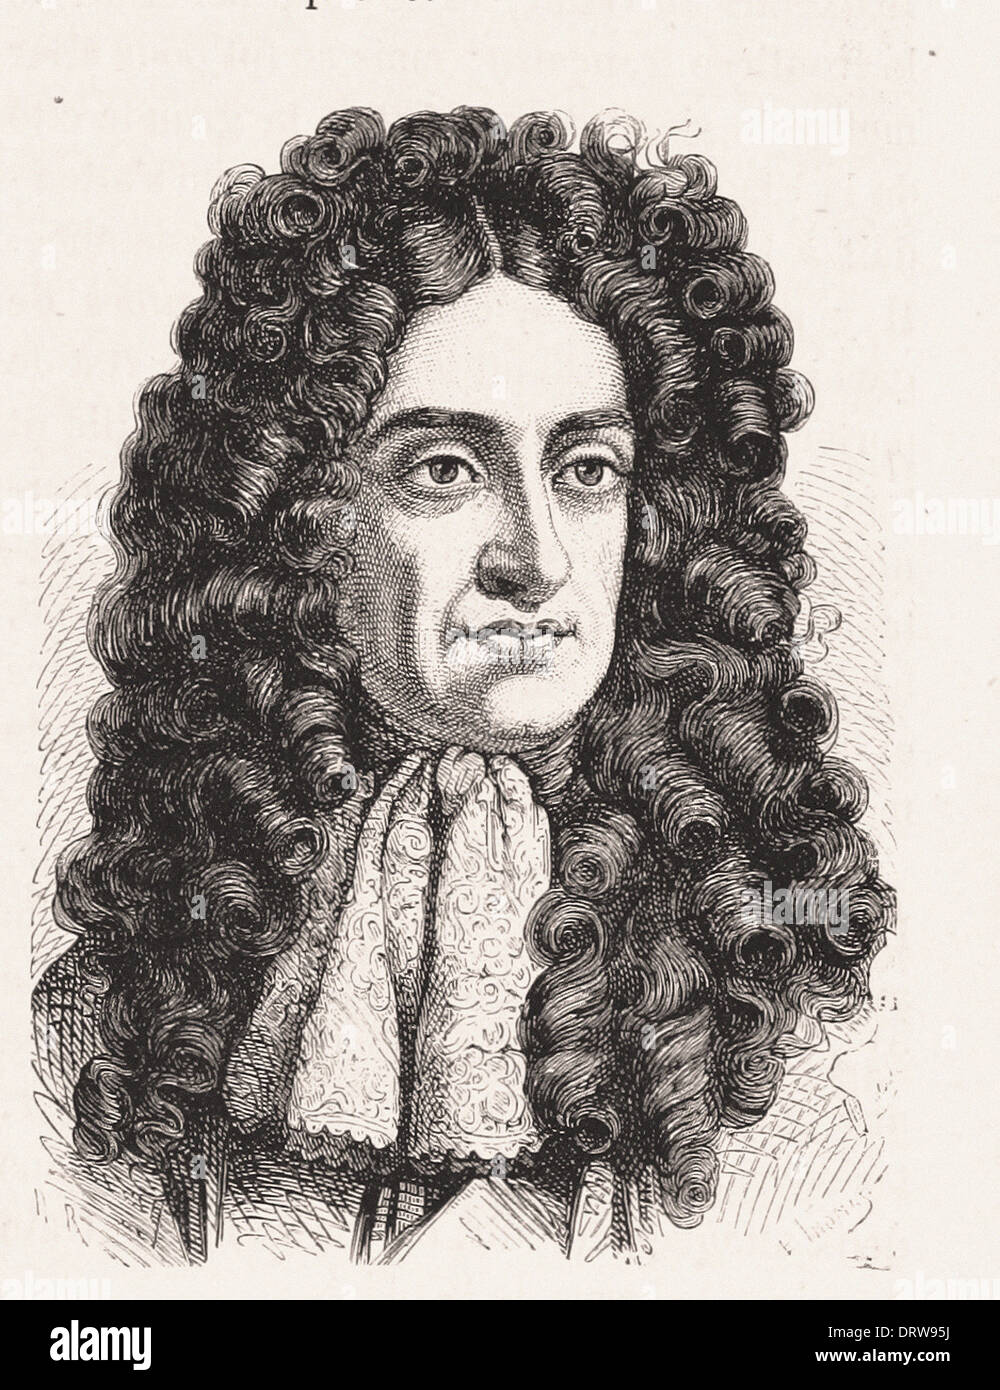 Portrait of Charles II King of England - French engraving XIX th century - Stock Image